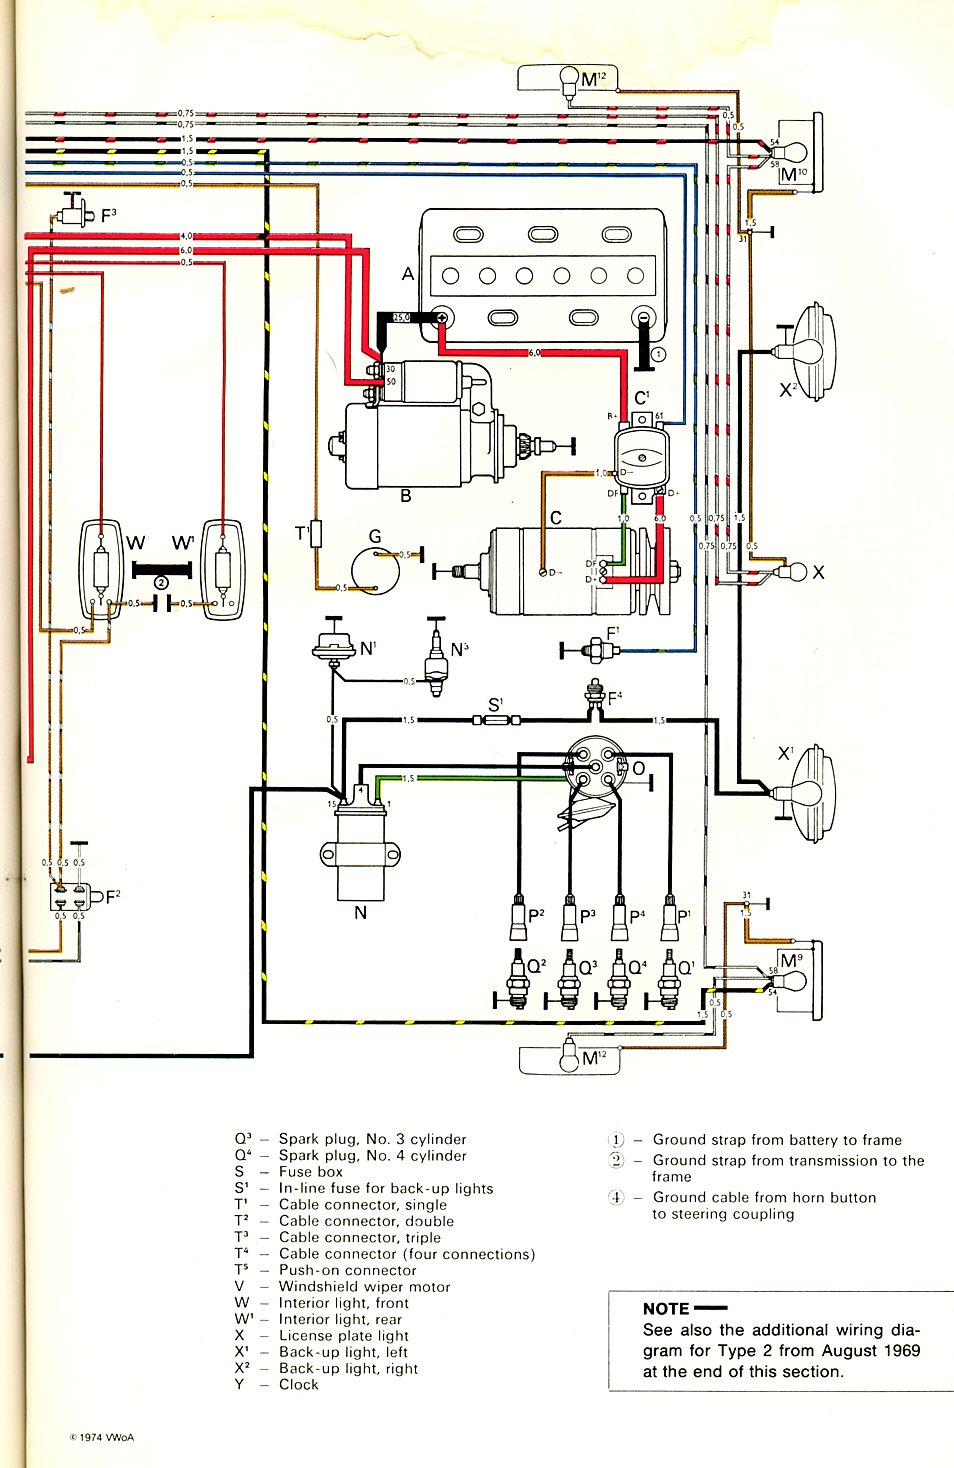 baybus_70b thesamba com type 2 wiring diagrams vw engine wiring diagram at gsmx.co